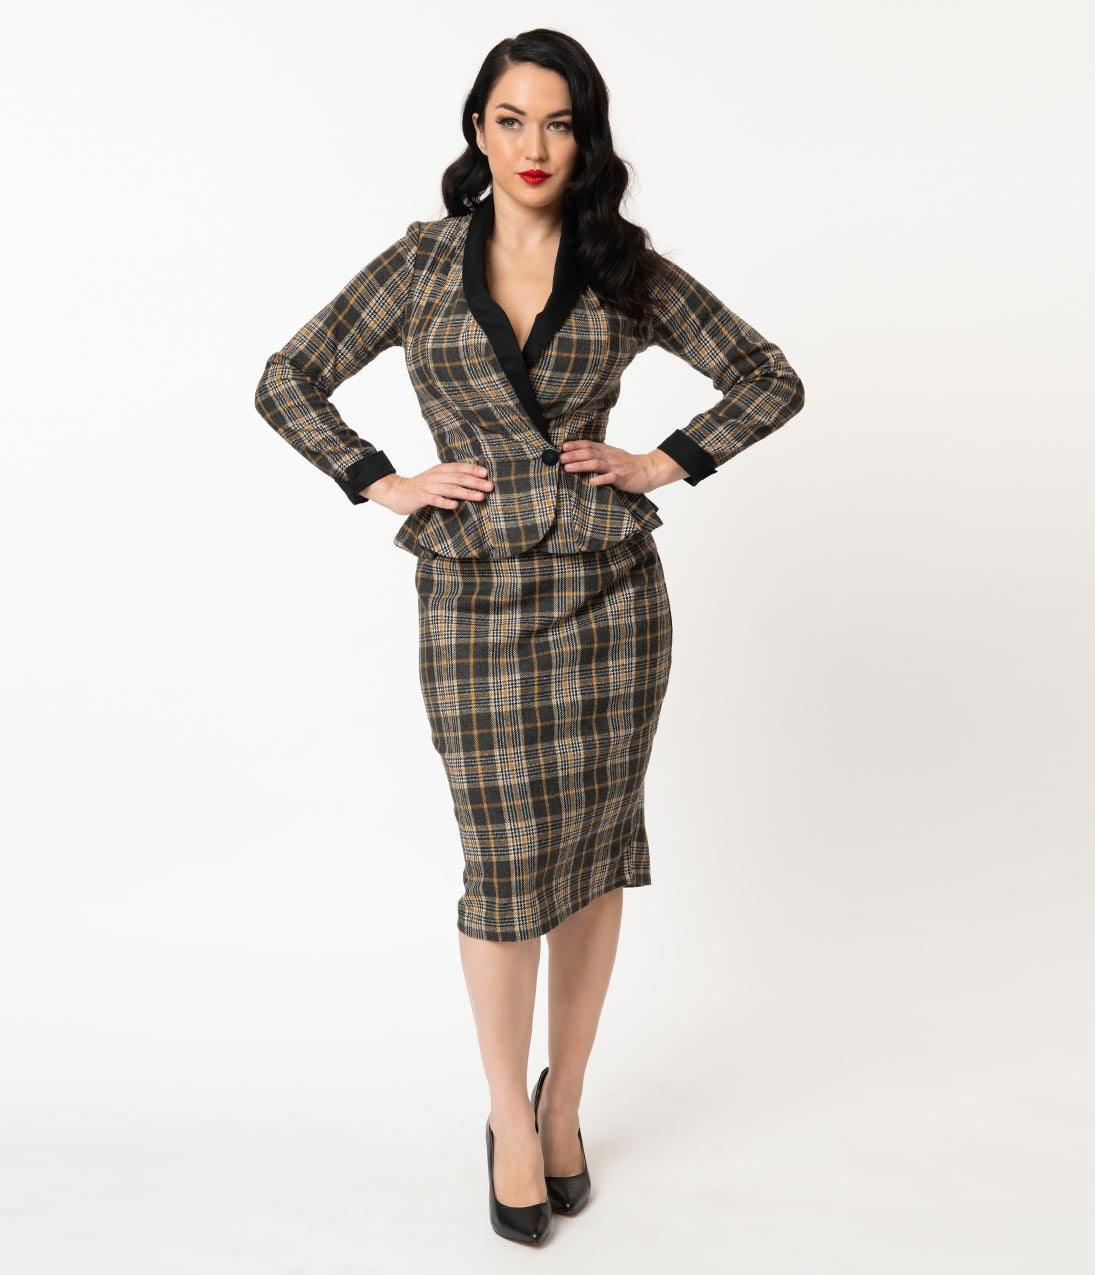 Vintage Tea Dresses, Floral Tea Dresses, Tea Length Dresses 1940S Grey  Mustard Plaid Woven Millie Pencil Skirt $68.00 AT vintagedancer.com